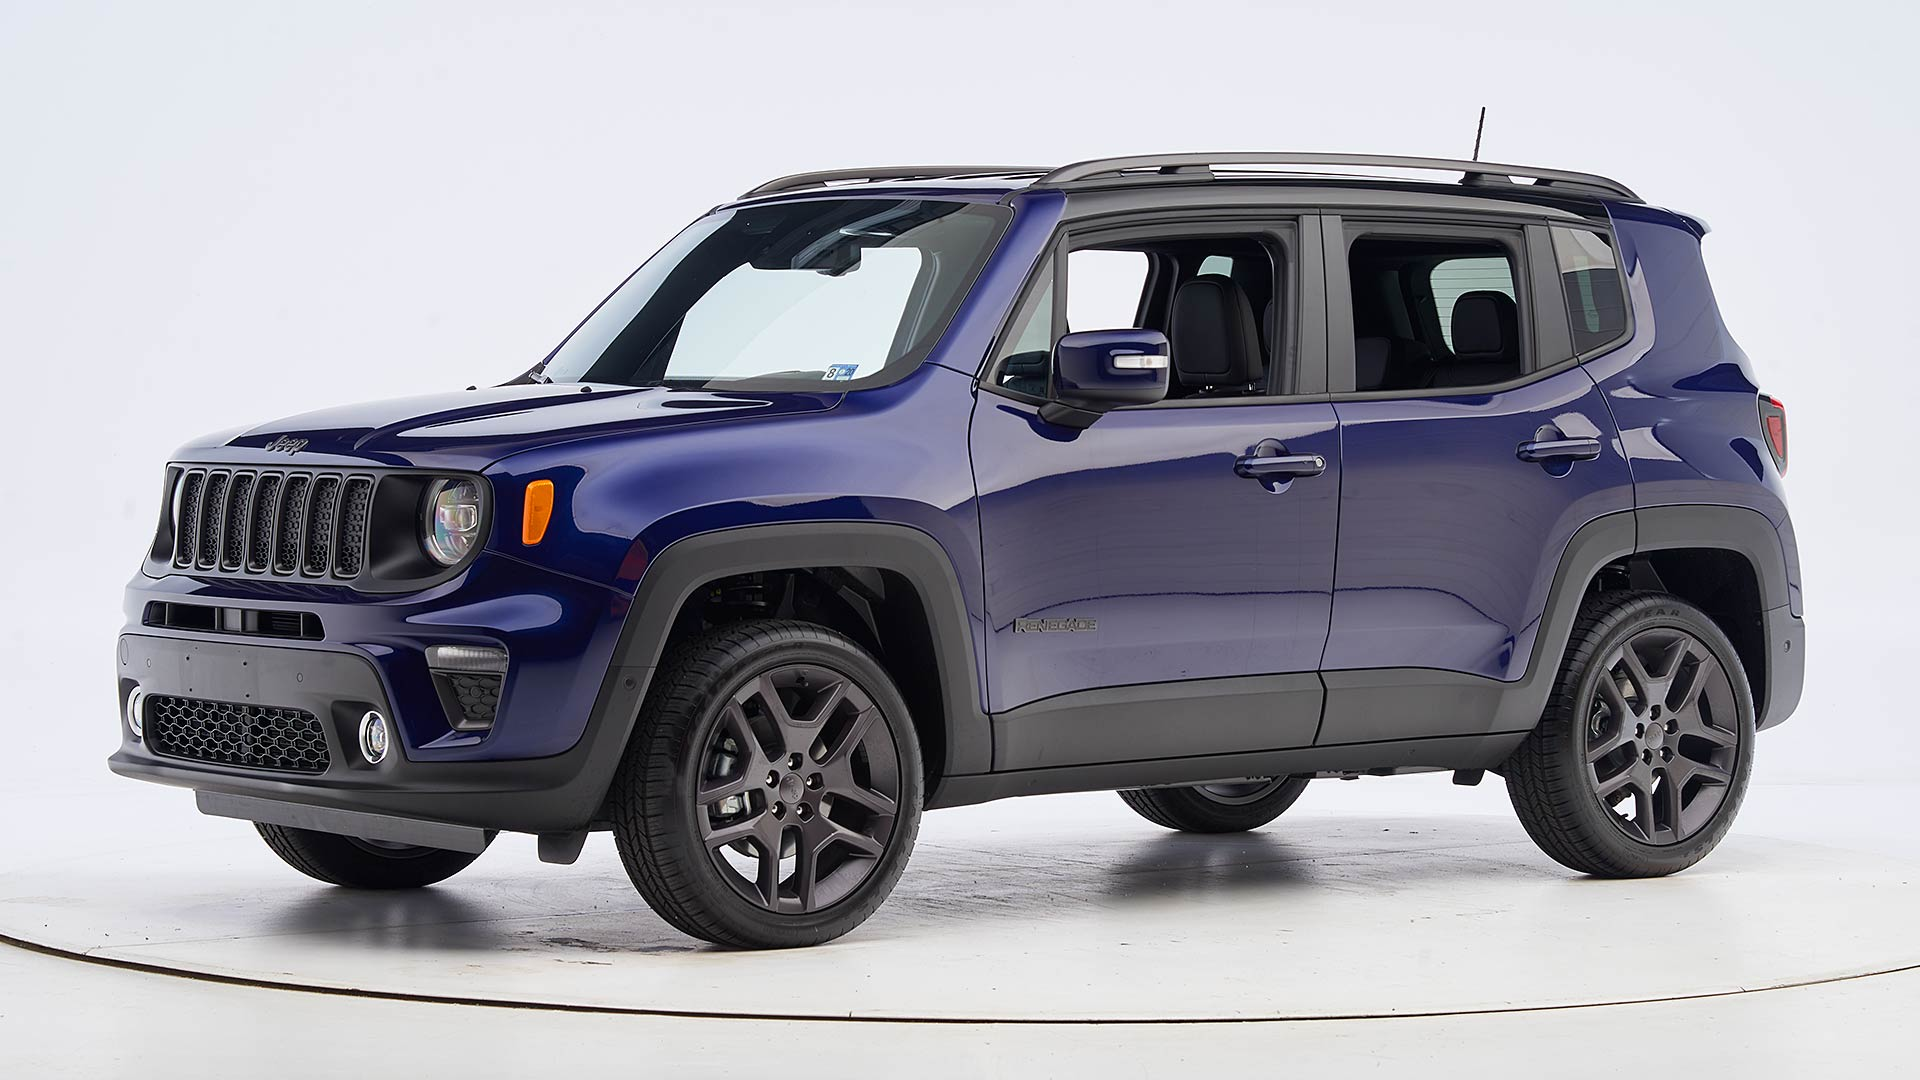 2019 Jeep Renegade 4-door SUV